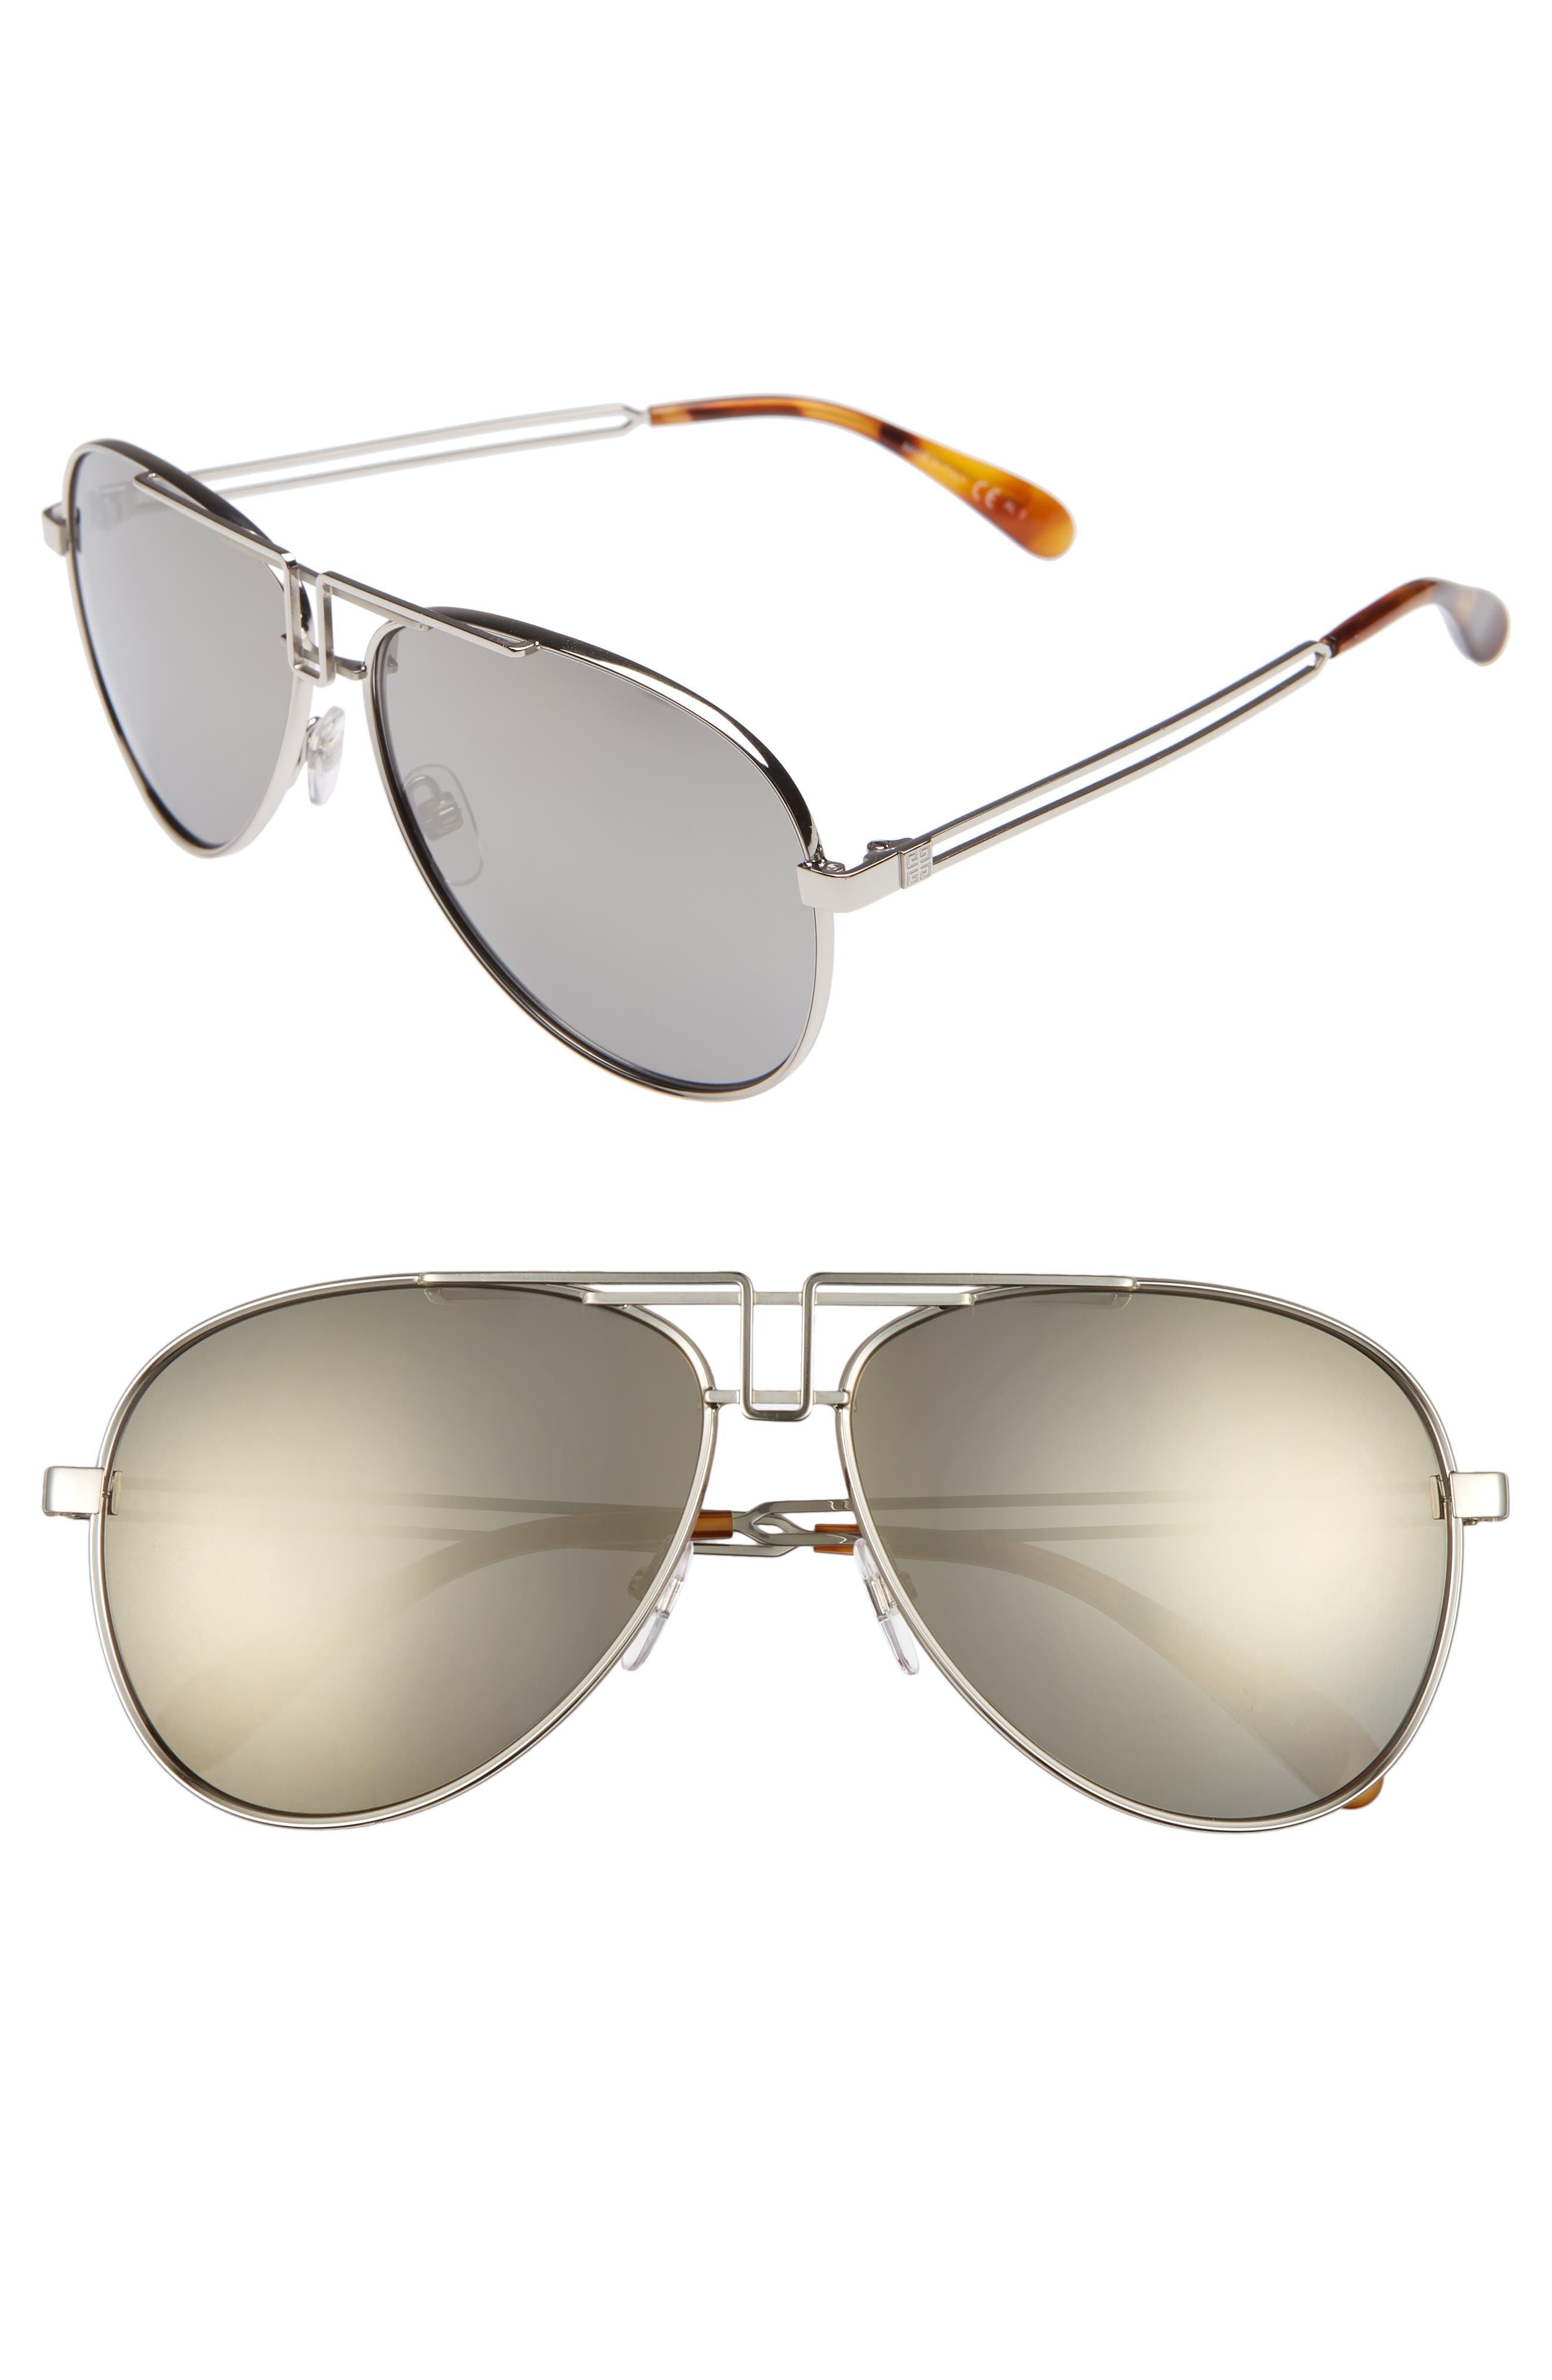 Givenchy 61Mm Aviator Sunglasses - Palladium